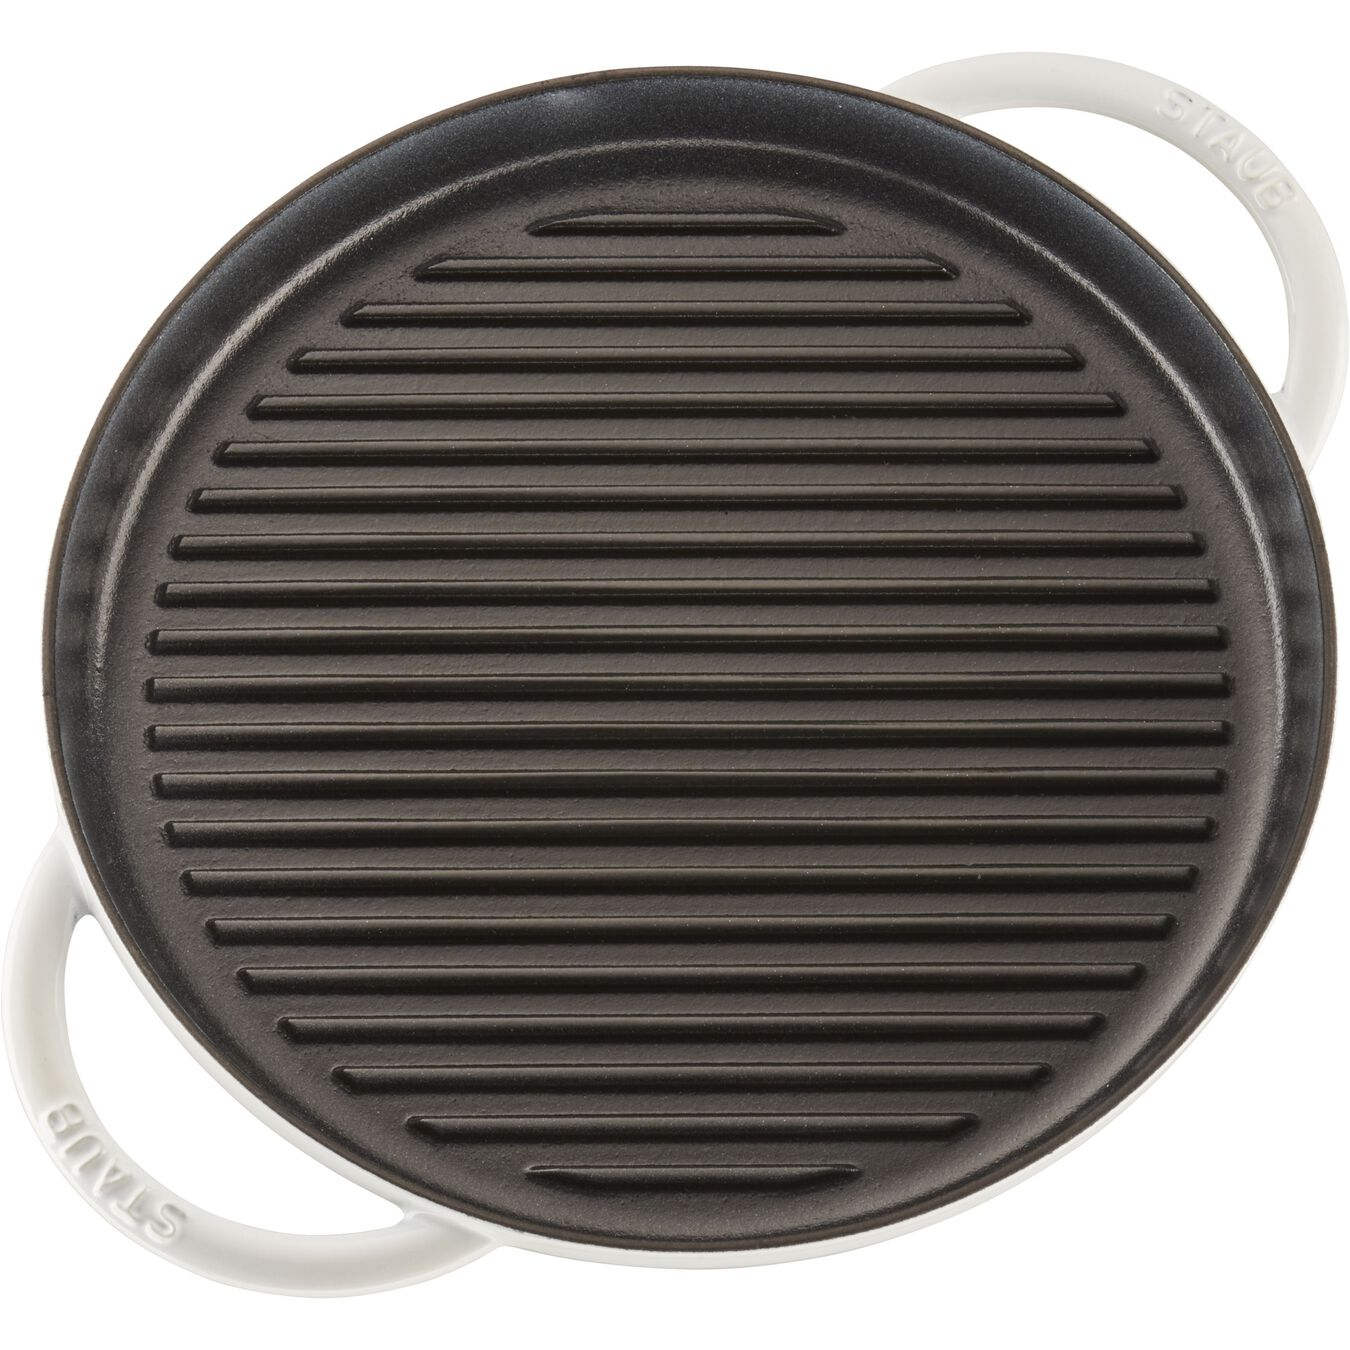 Staub Cast Iron Round Grill Pan With Glass Lid White Official Zwilling Shop